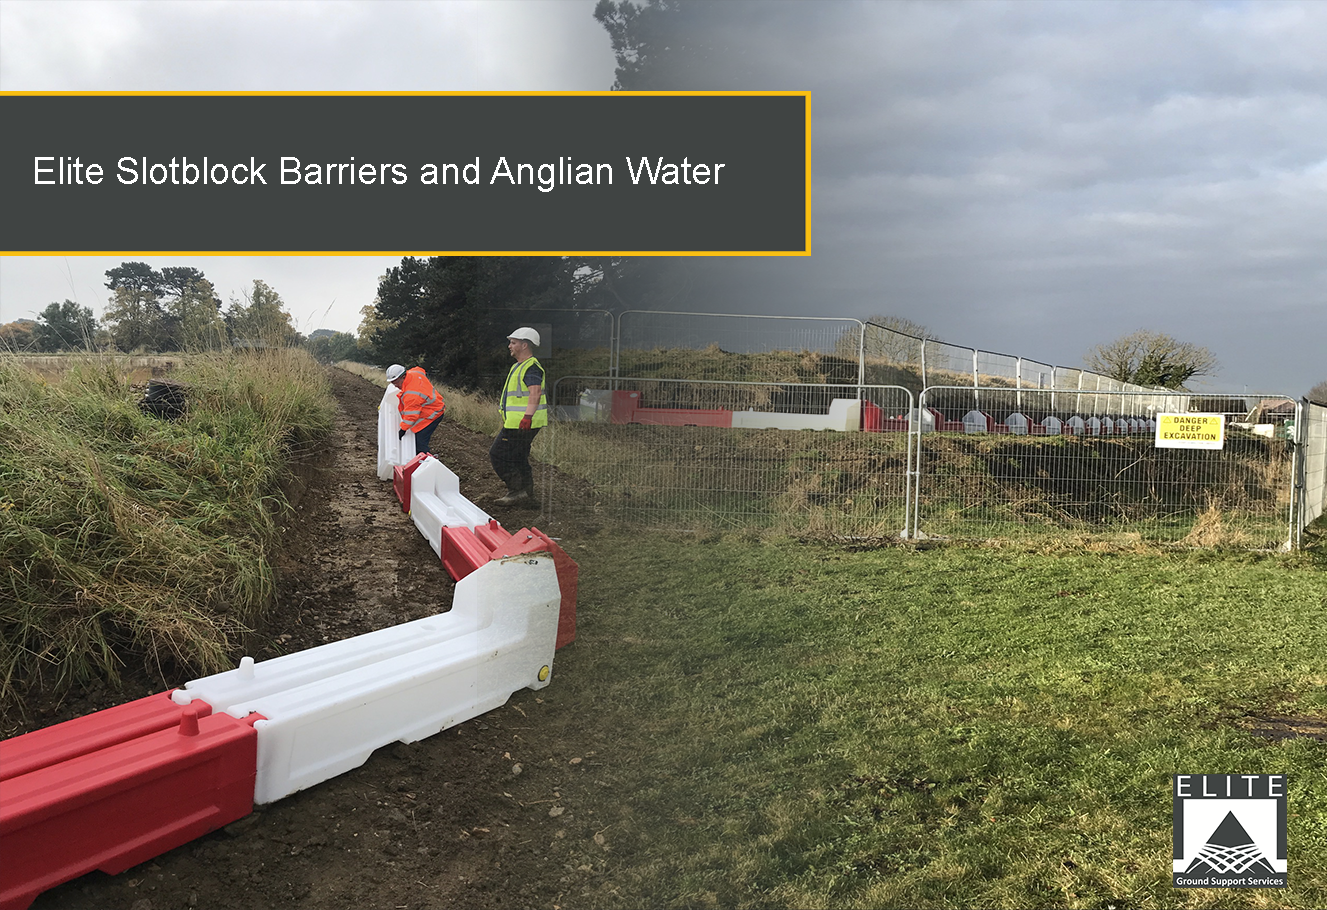 slotblock-barriers-and-anglian-water